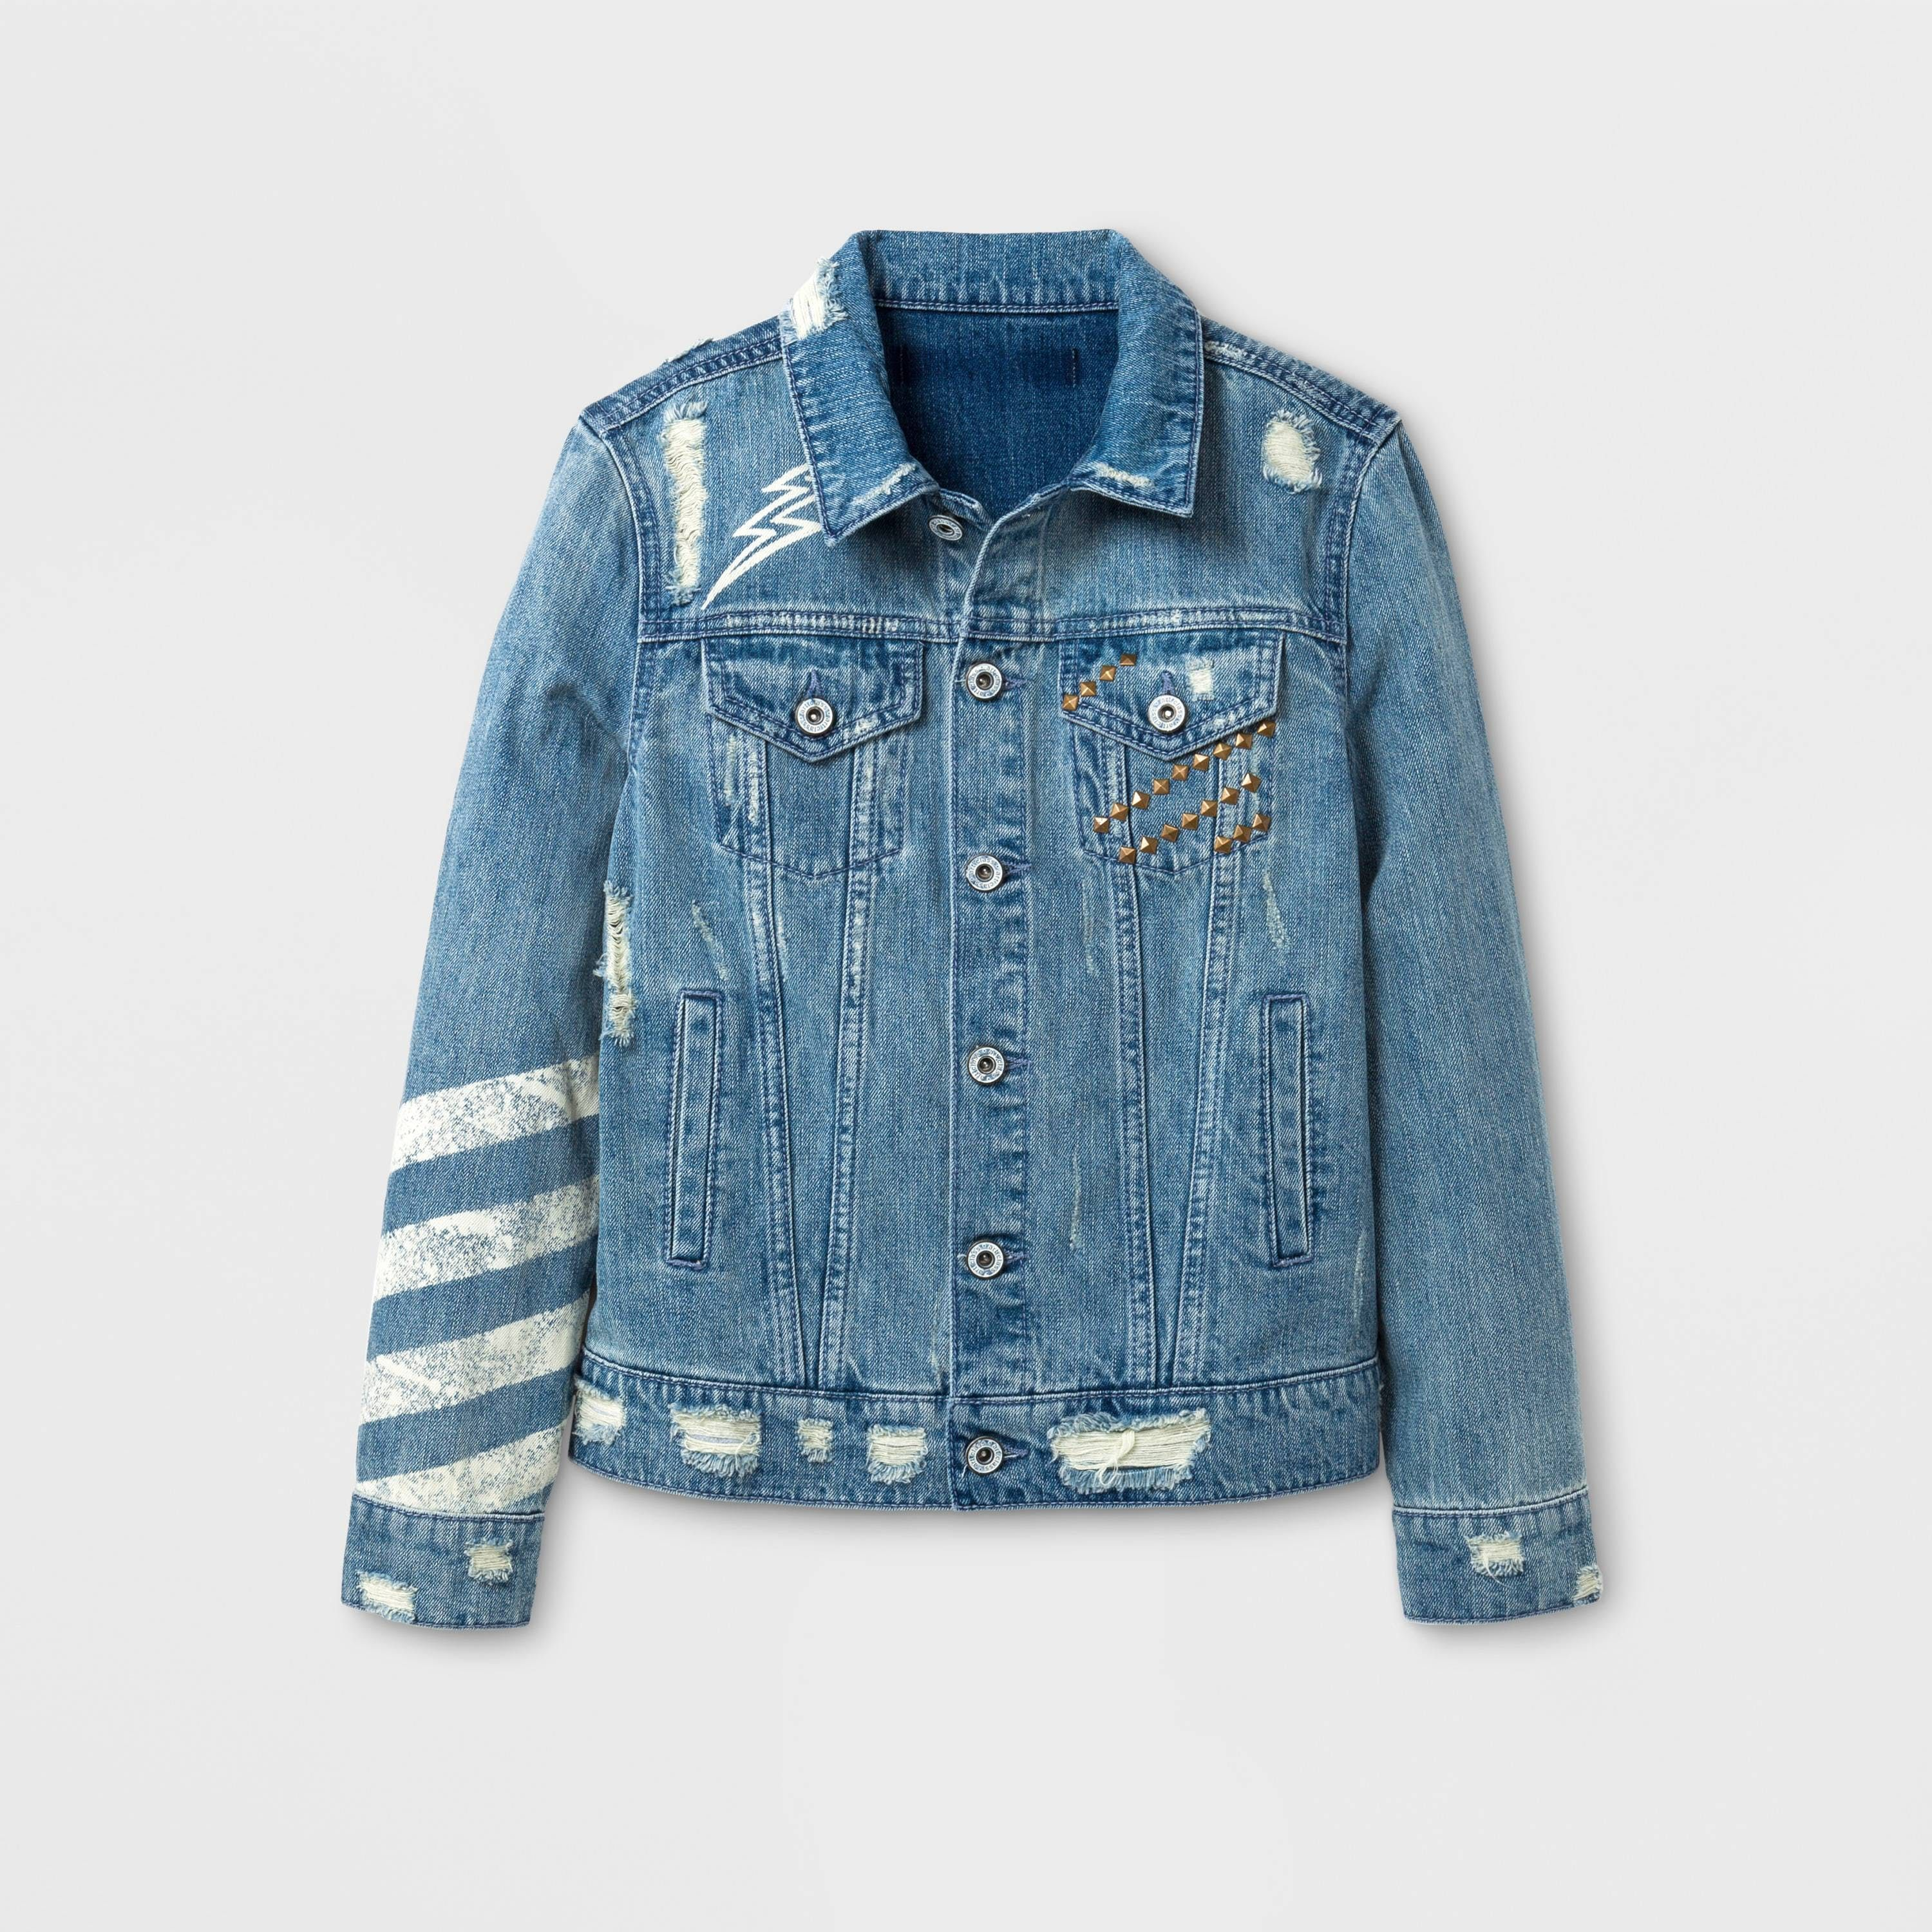 Target's Fall 2017 Art Class Clothing Collection Will Have ...